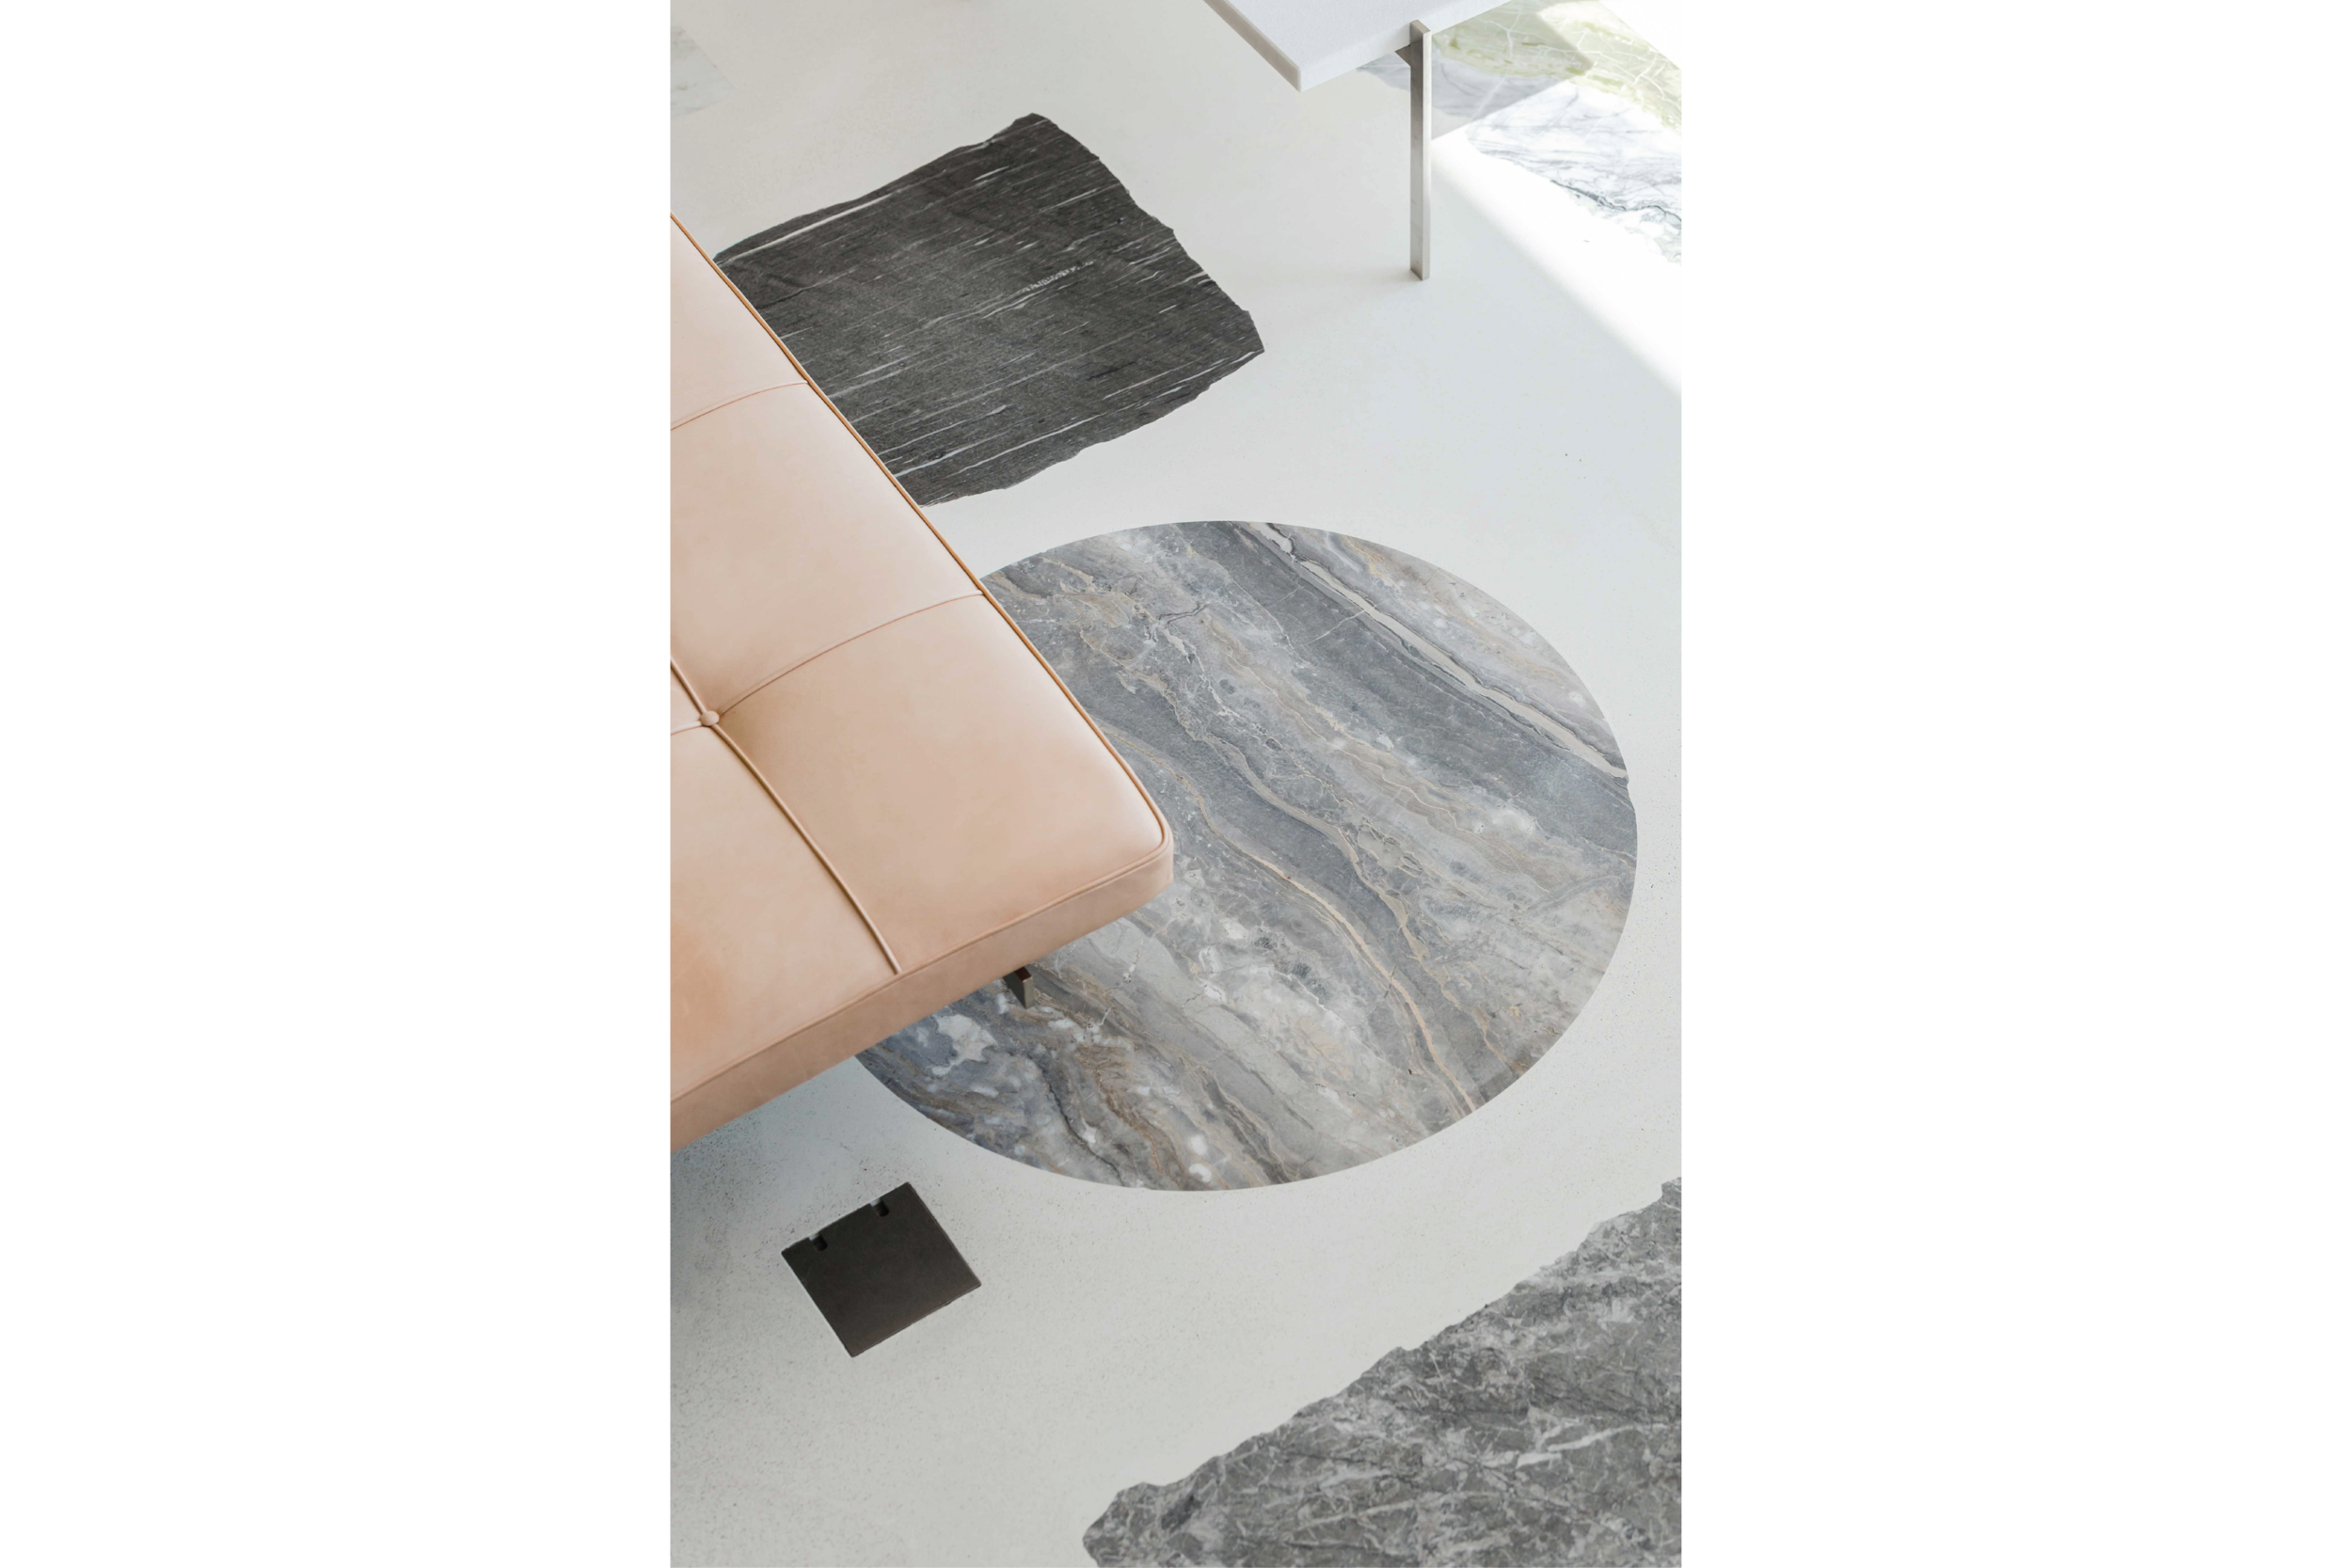 Apartment with minimalist design and marble floor by Do Architects.